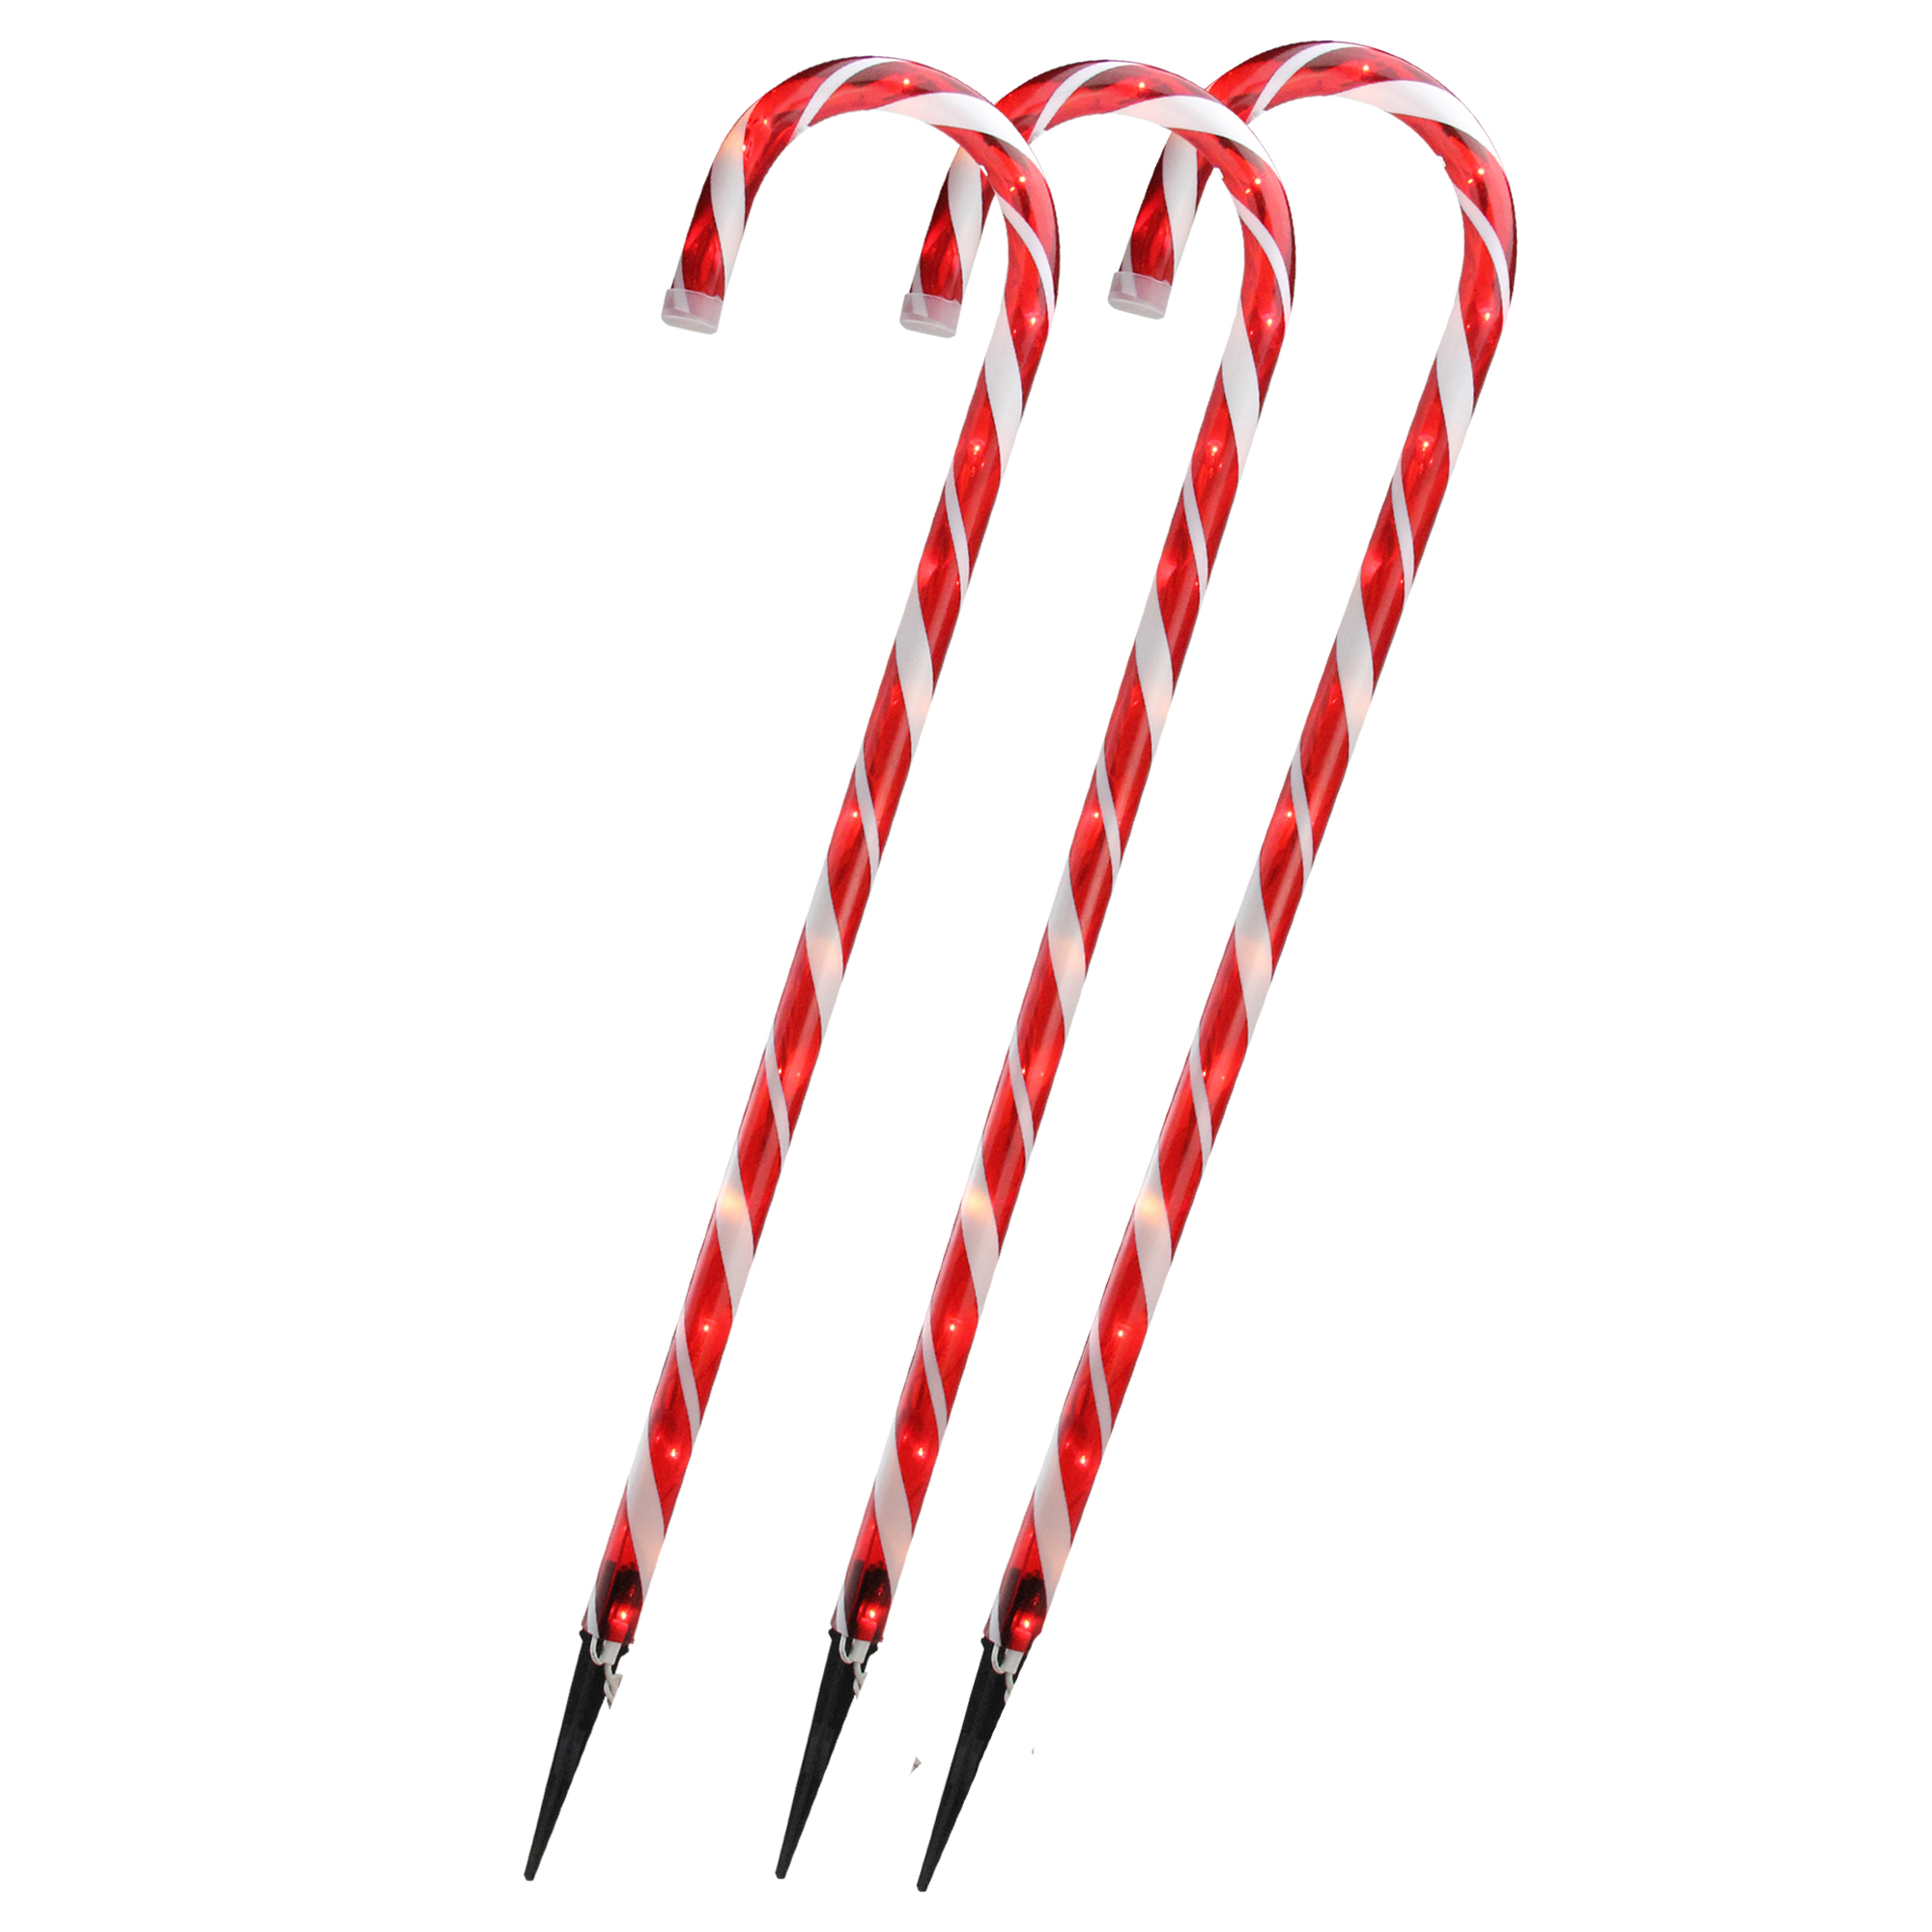 Set of 3 Lighted Outdoor Shimmering Candy Cane Christmas Lawn Stakes 28""